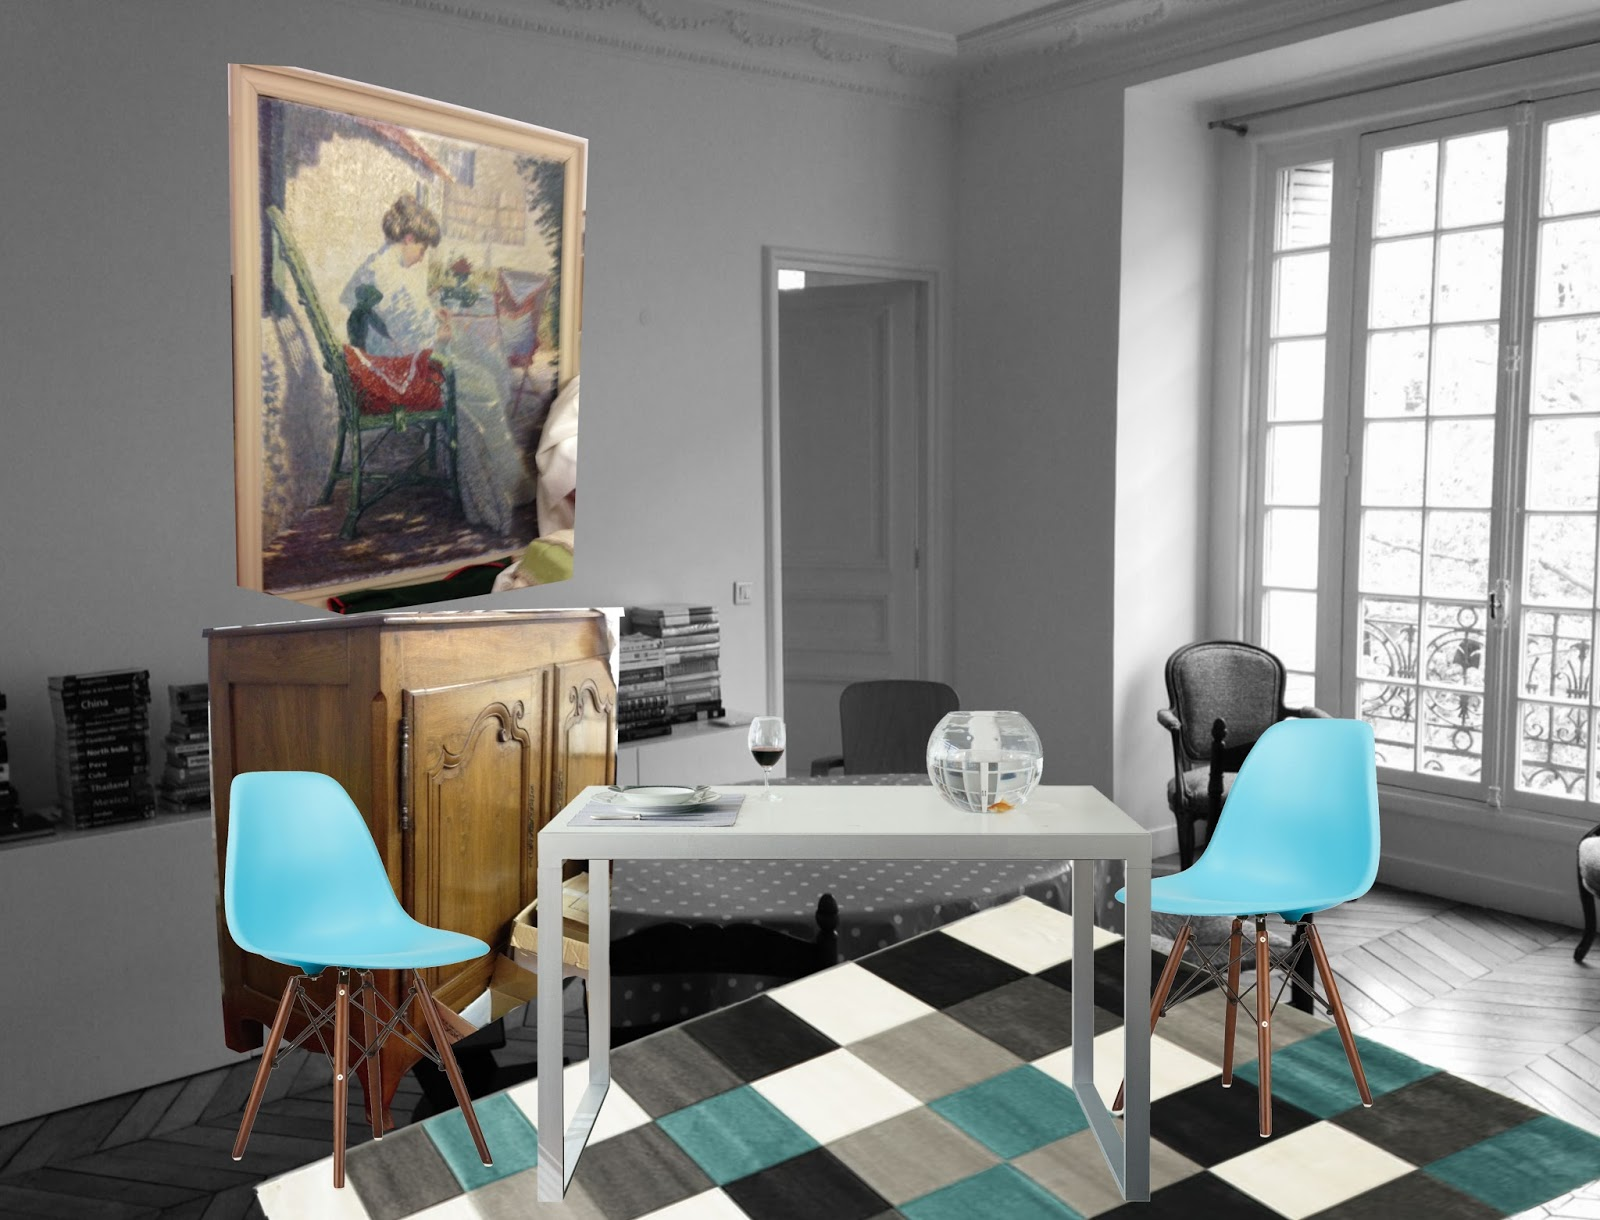 archiLAURA Home Design: Un soggiorno a Parigi | A living room in Paris